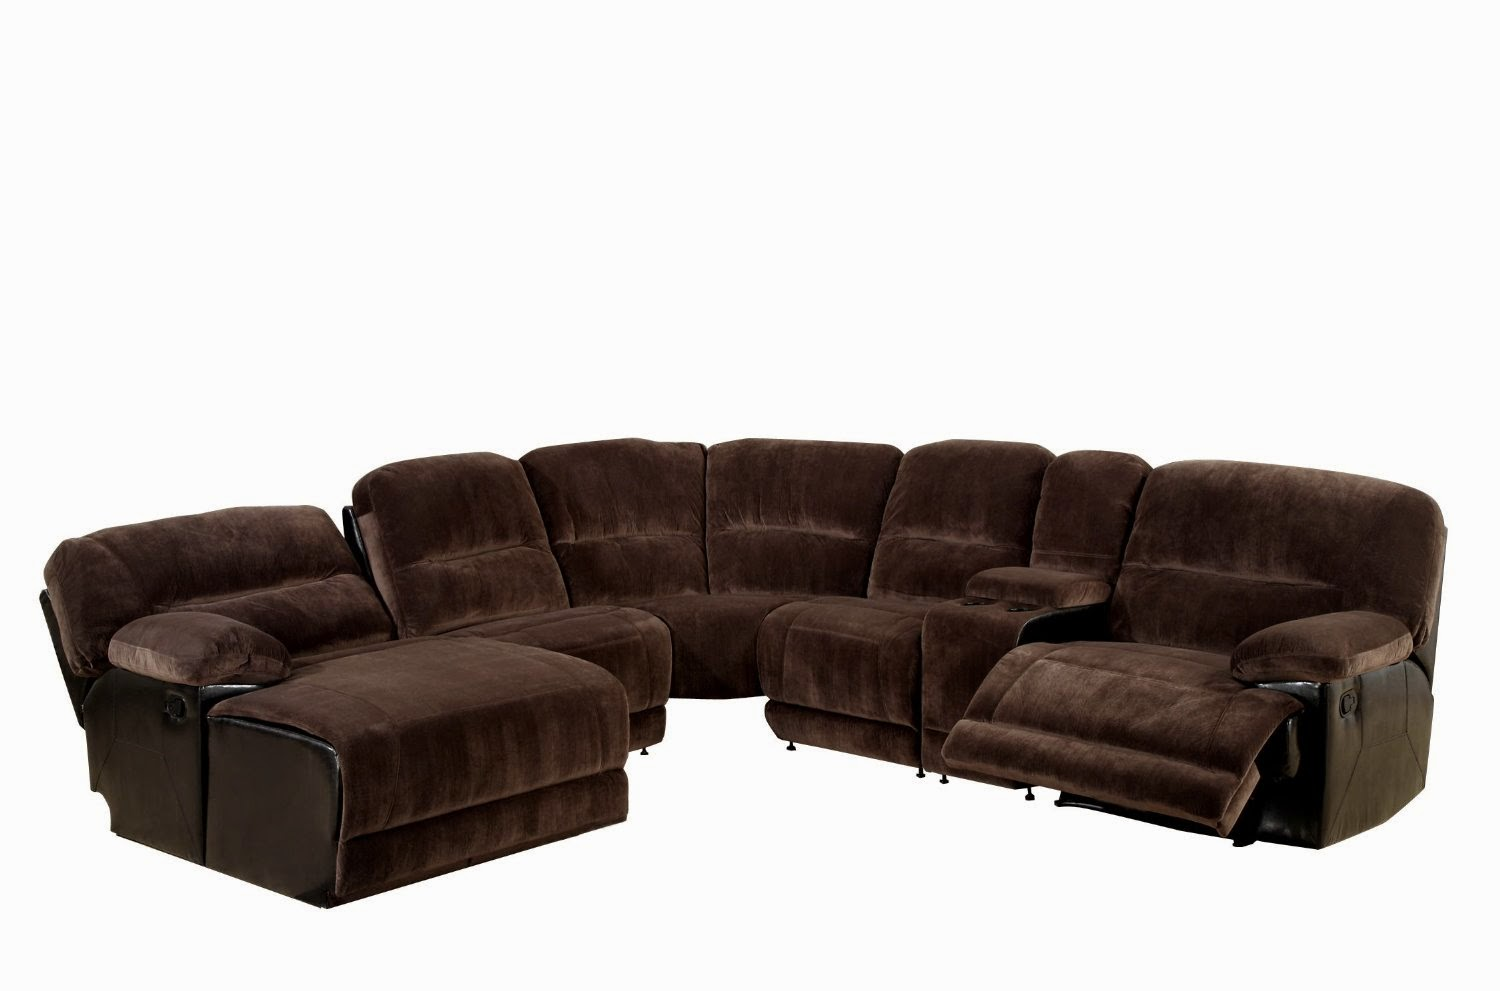 Reclining sofas for sale cheap saddle microfiber for Modern sectional sofas